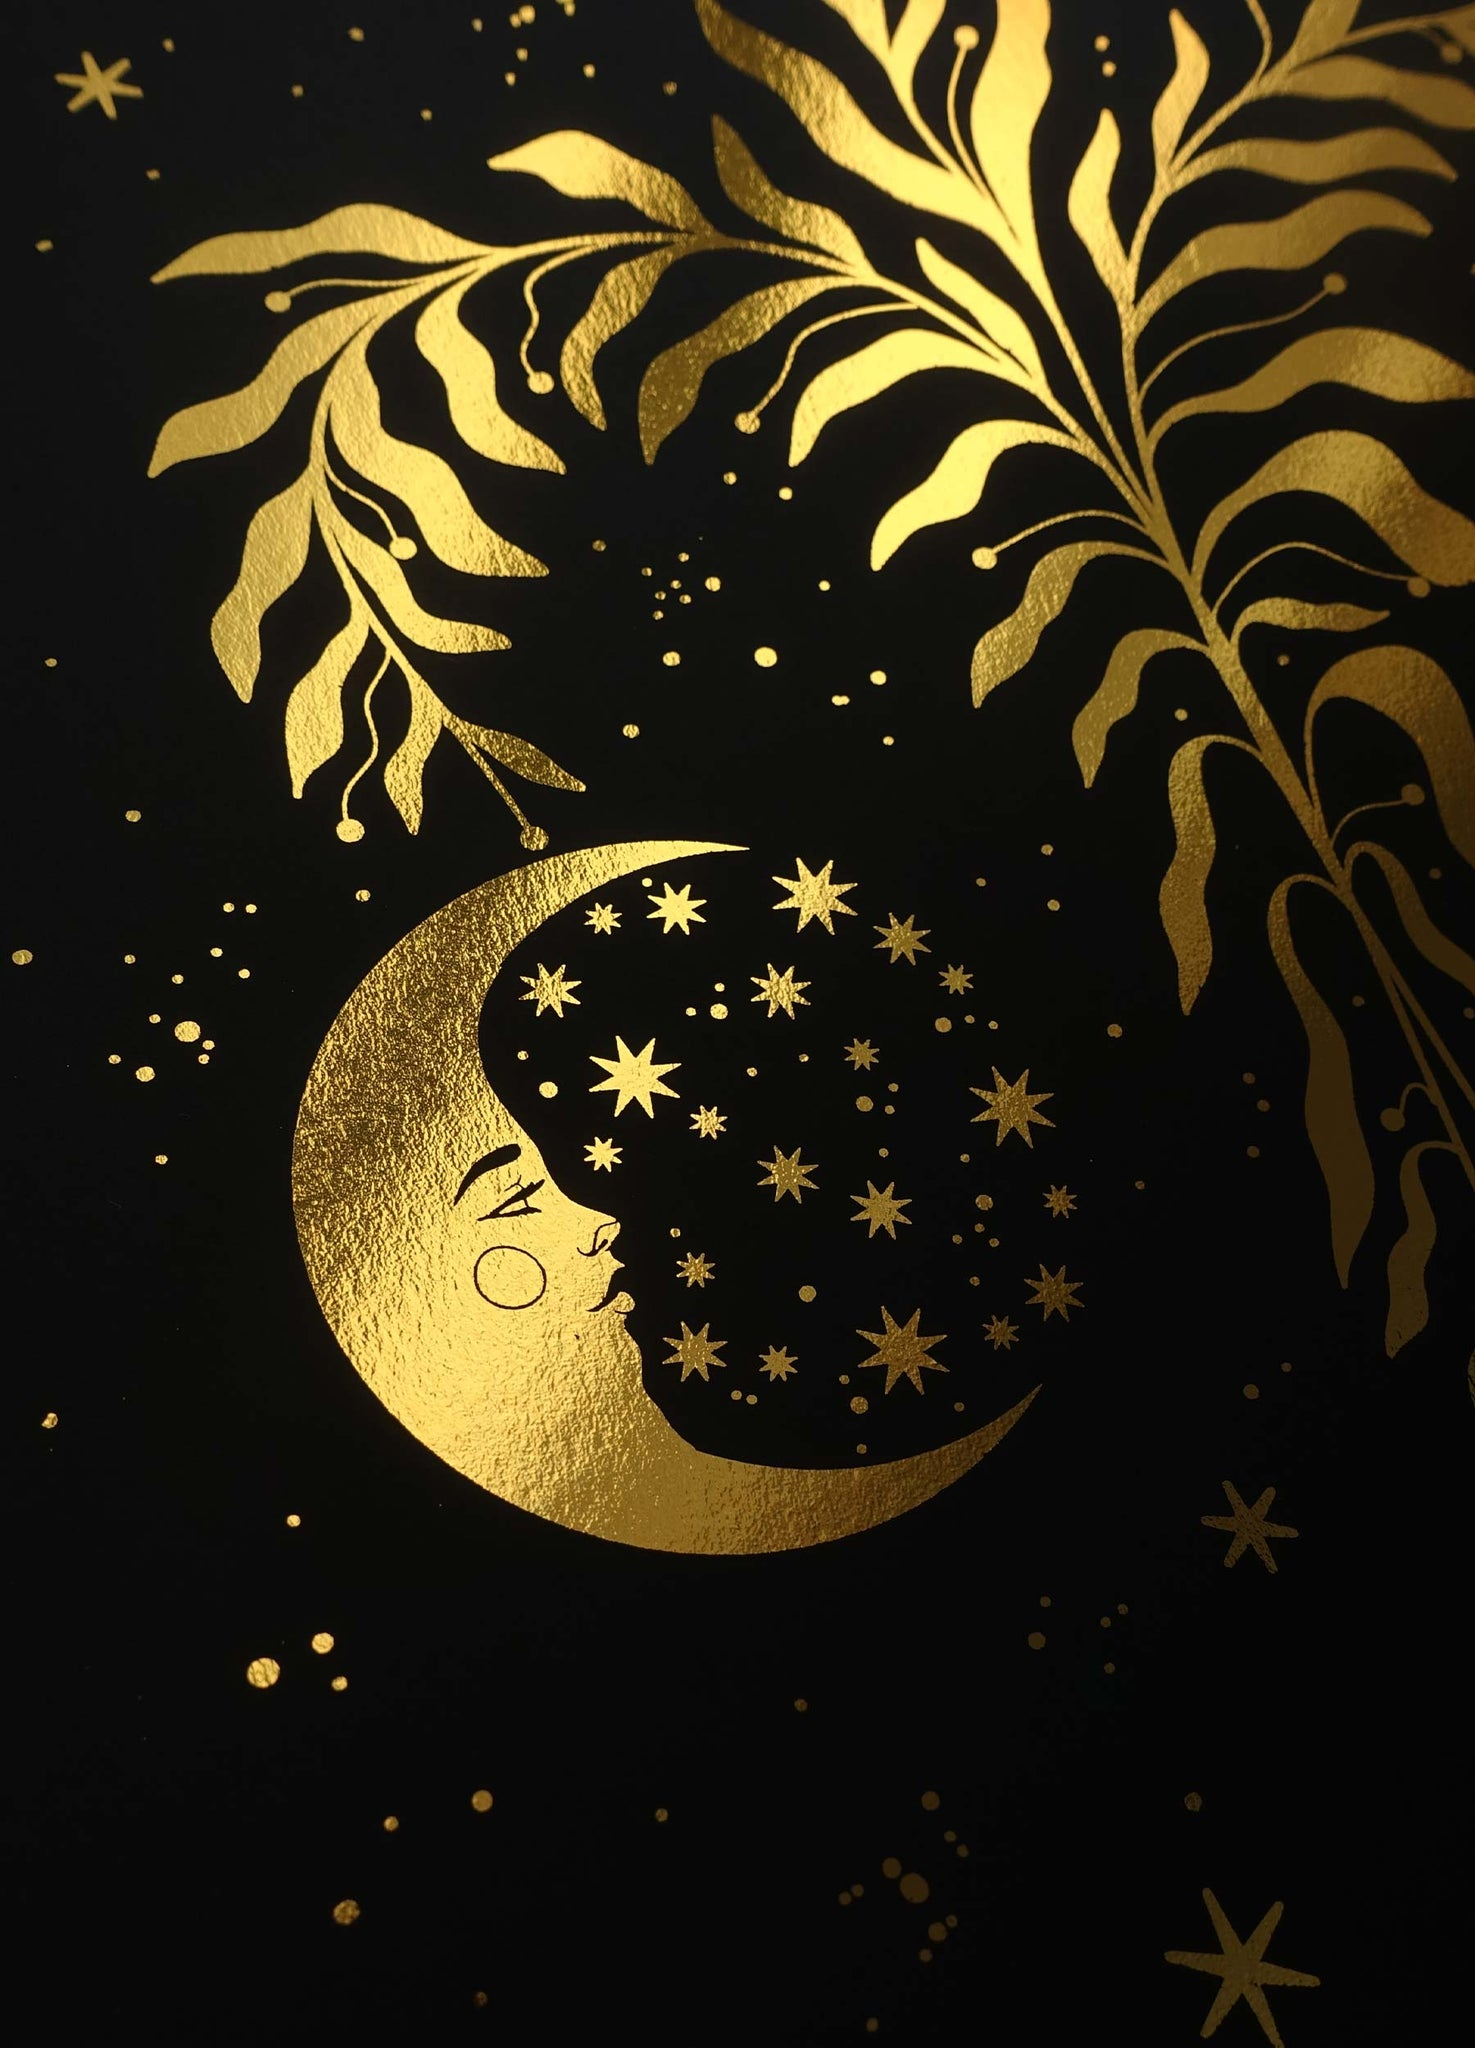 The Yule tree with a sun, moon and star gold foil art print on black paper by Cocorrina & Co